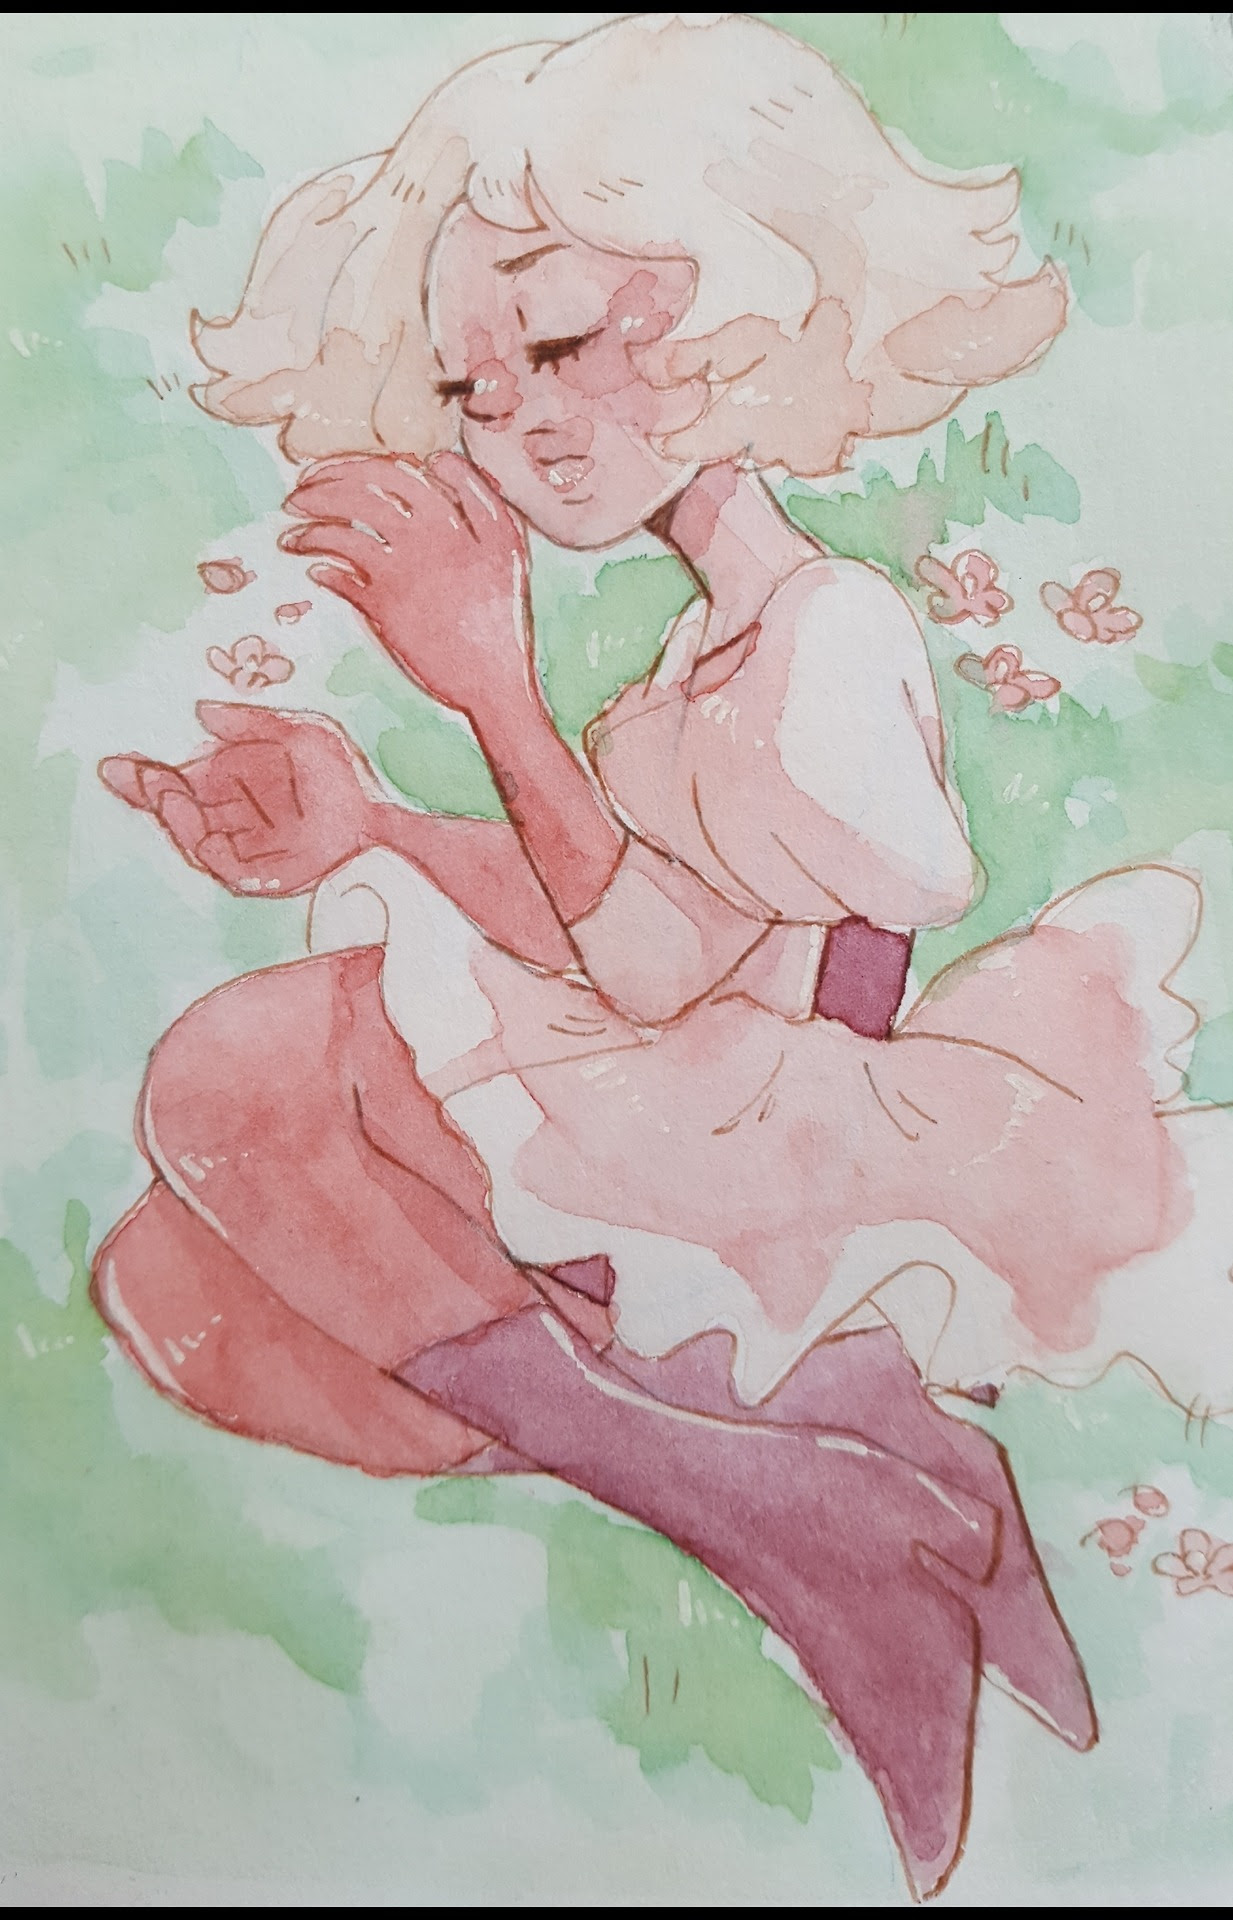 Pink Diamond is so squishable!!! I might most more watercolor soon! ((Does anyone want to see more sketches and doodles?))